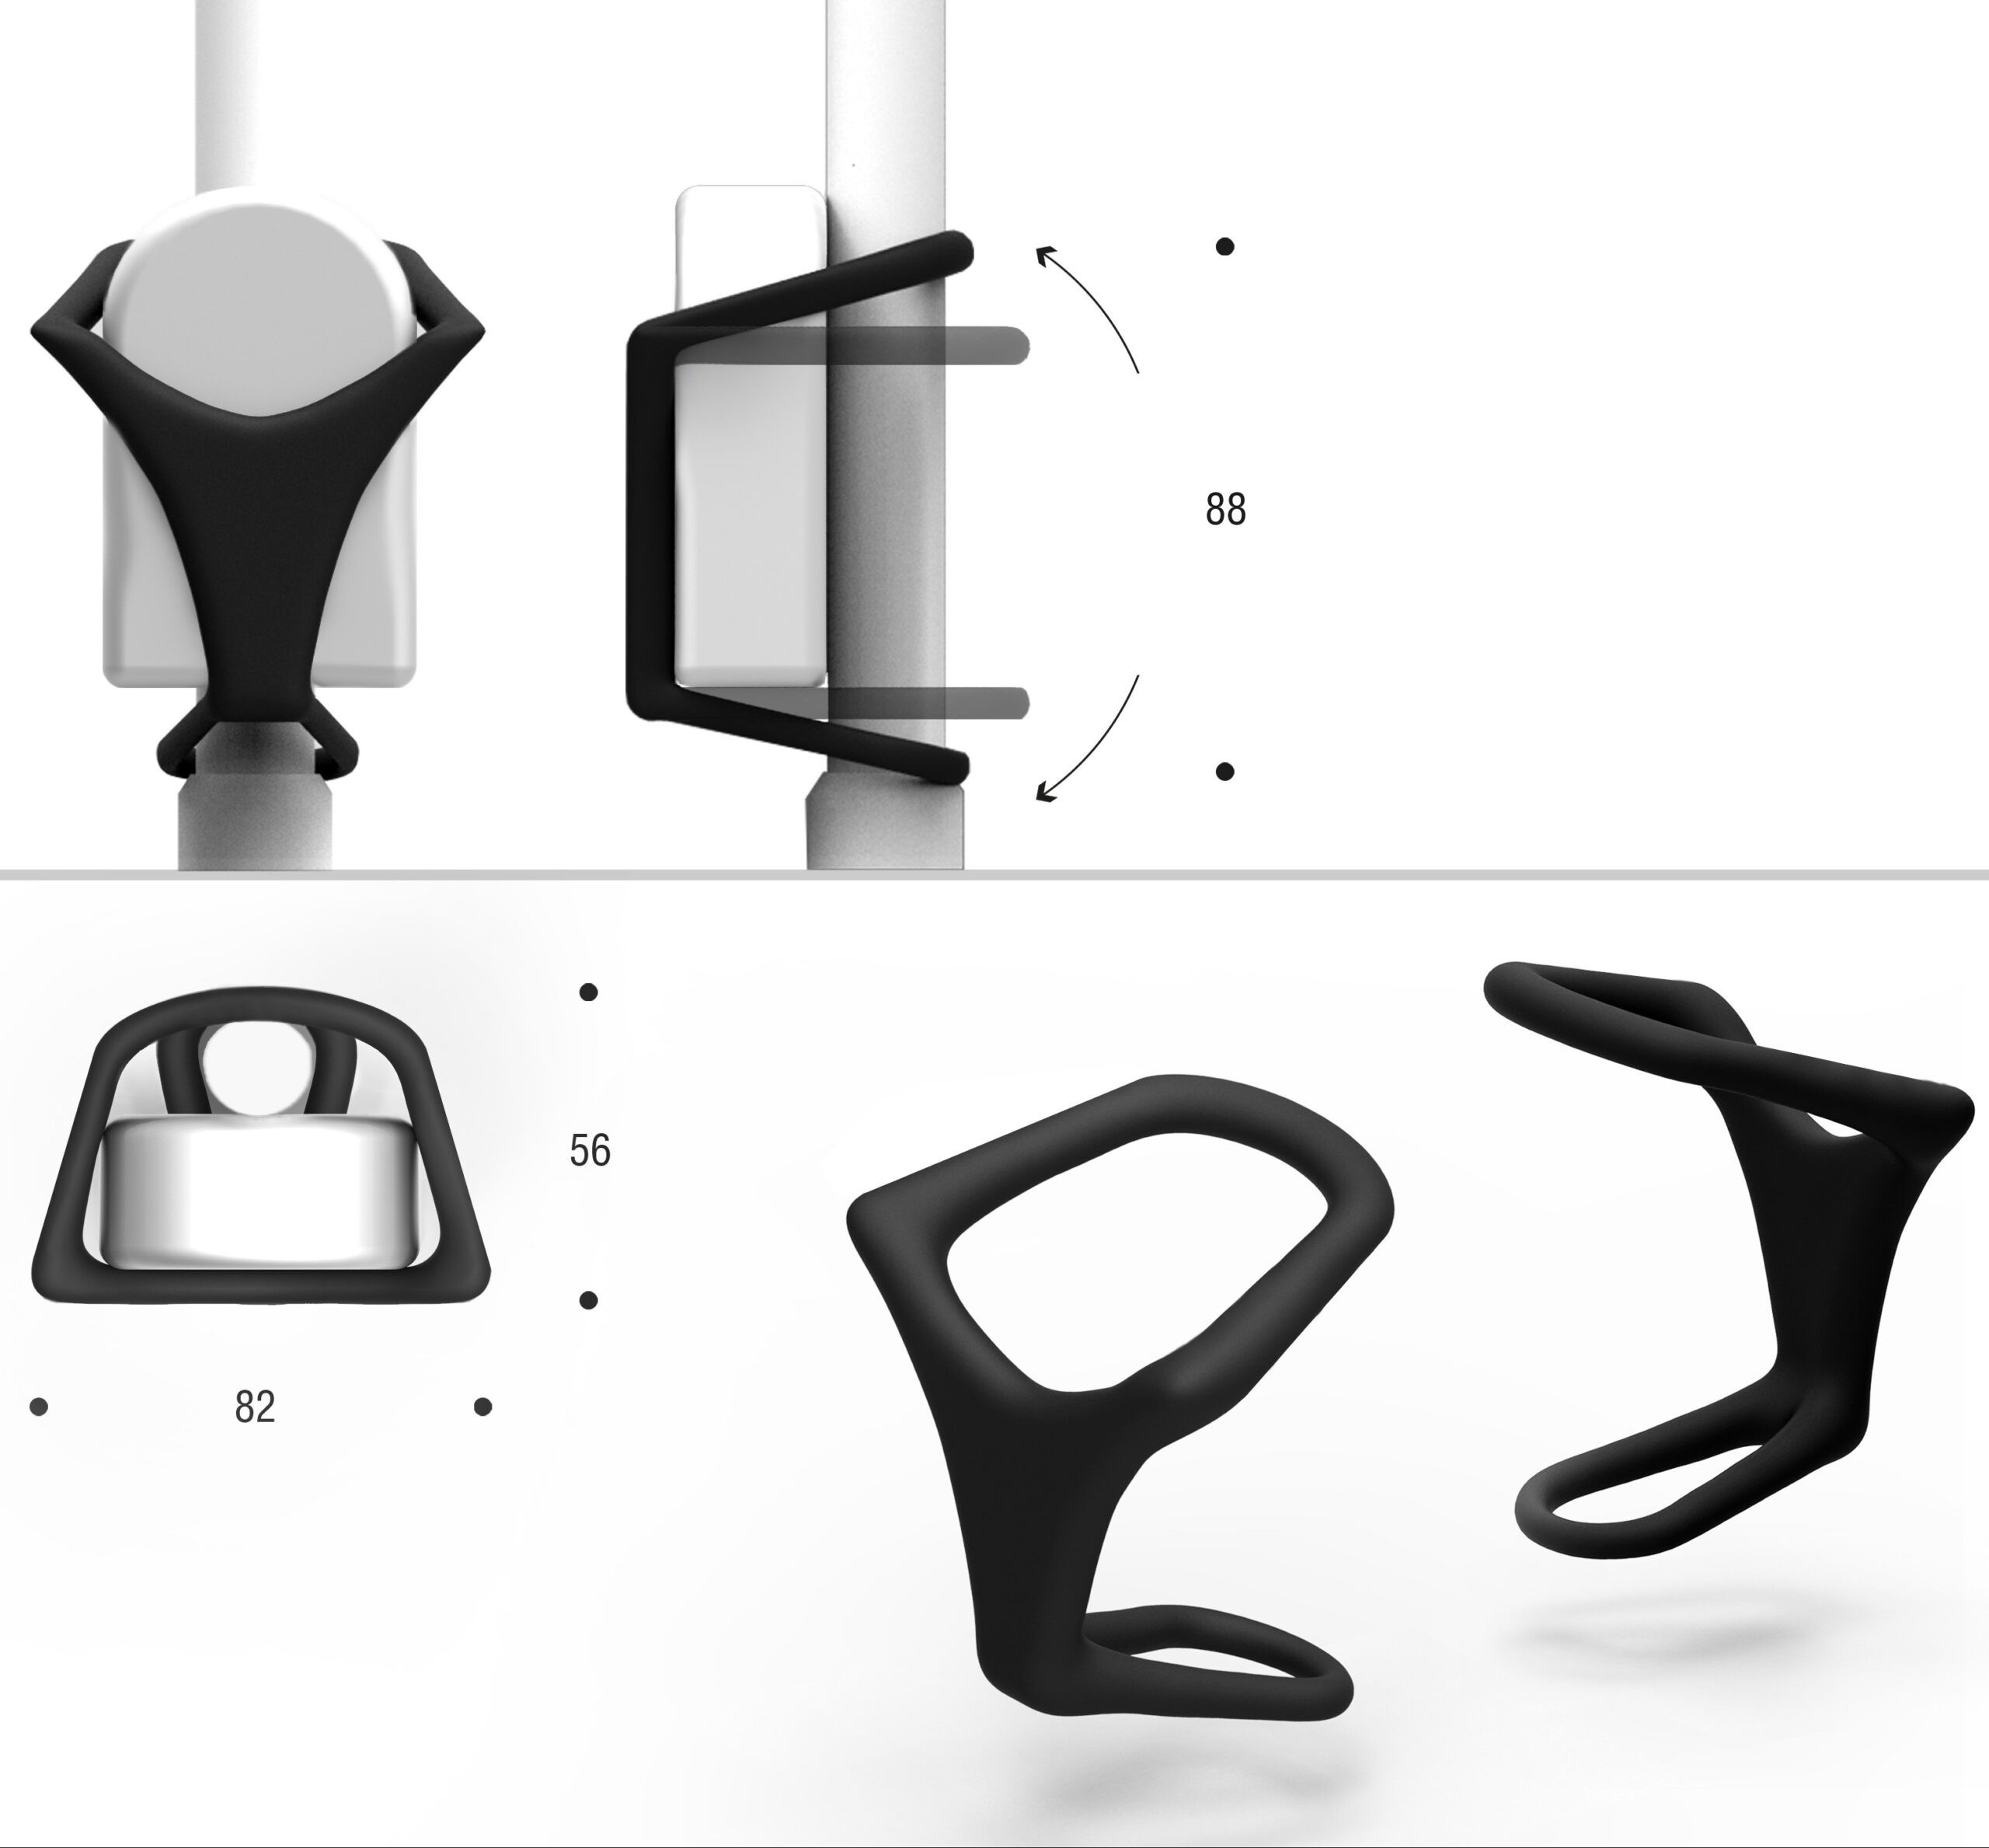 ORIENTOMA: A wearable orientation system for blind and visually impaired people